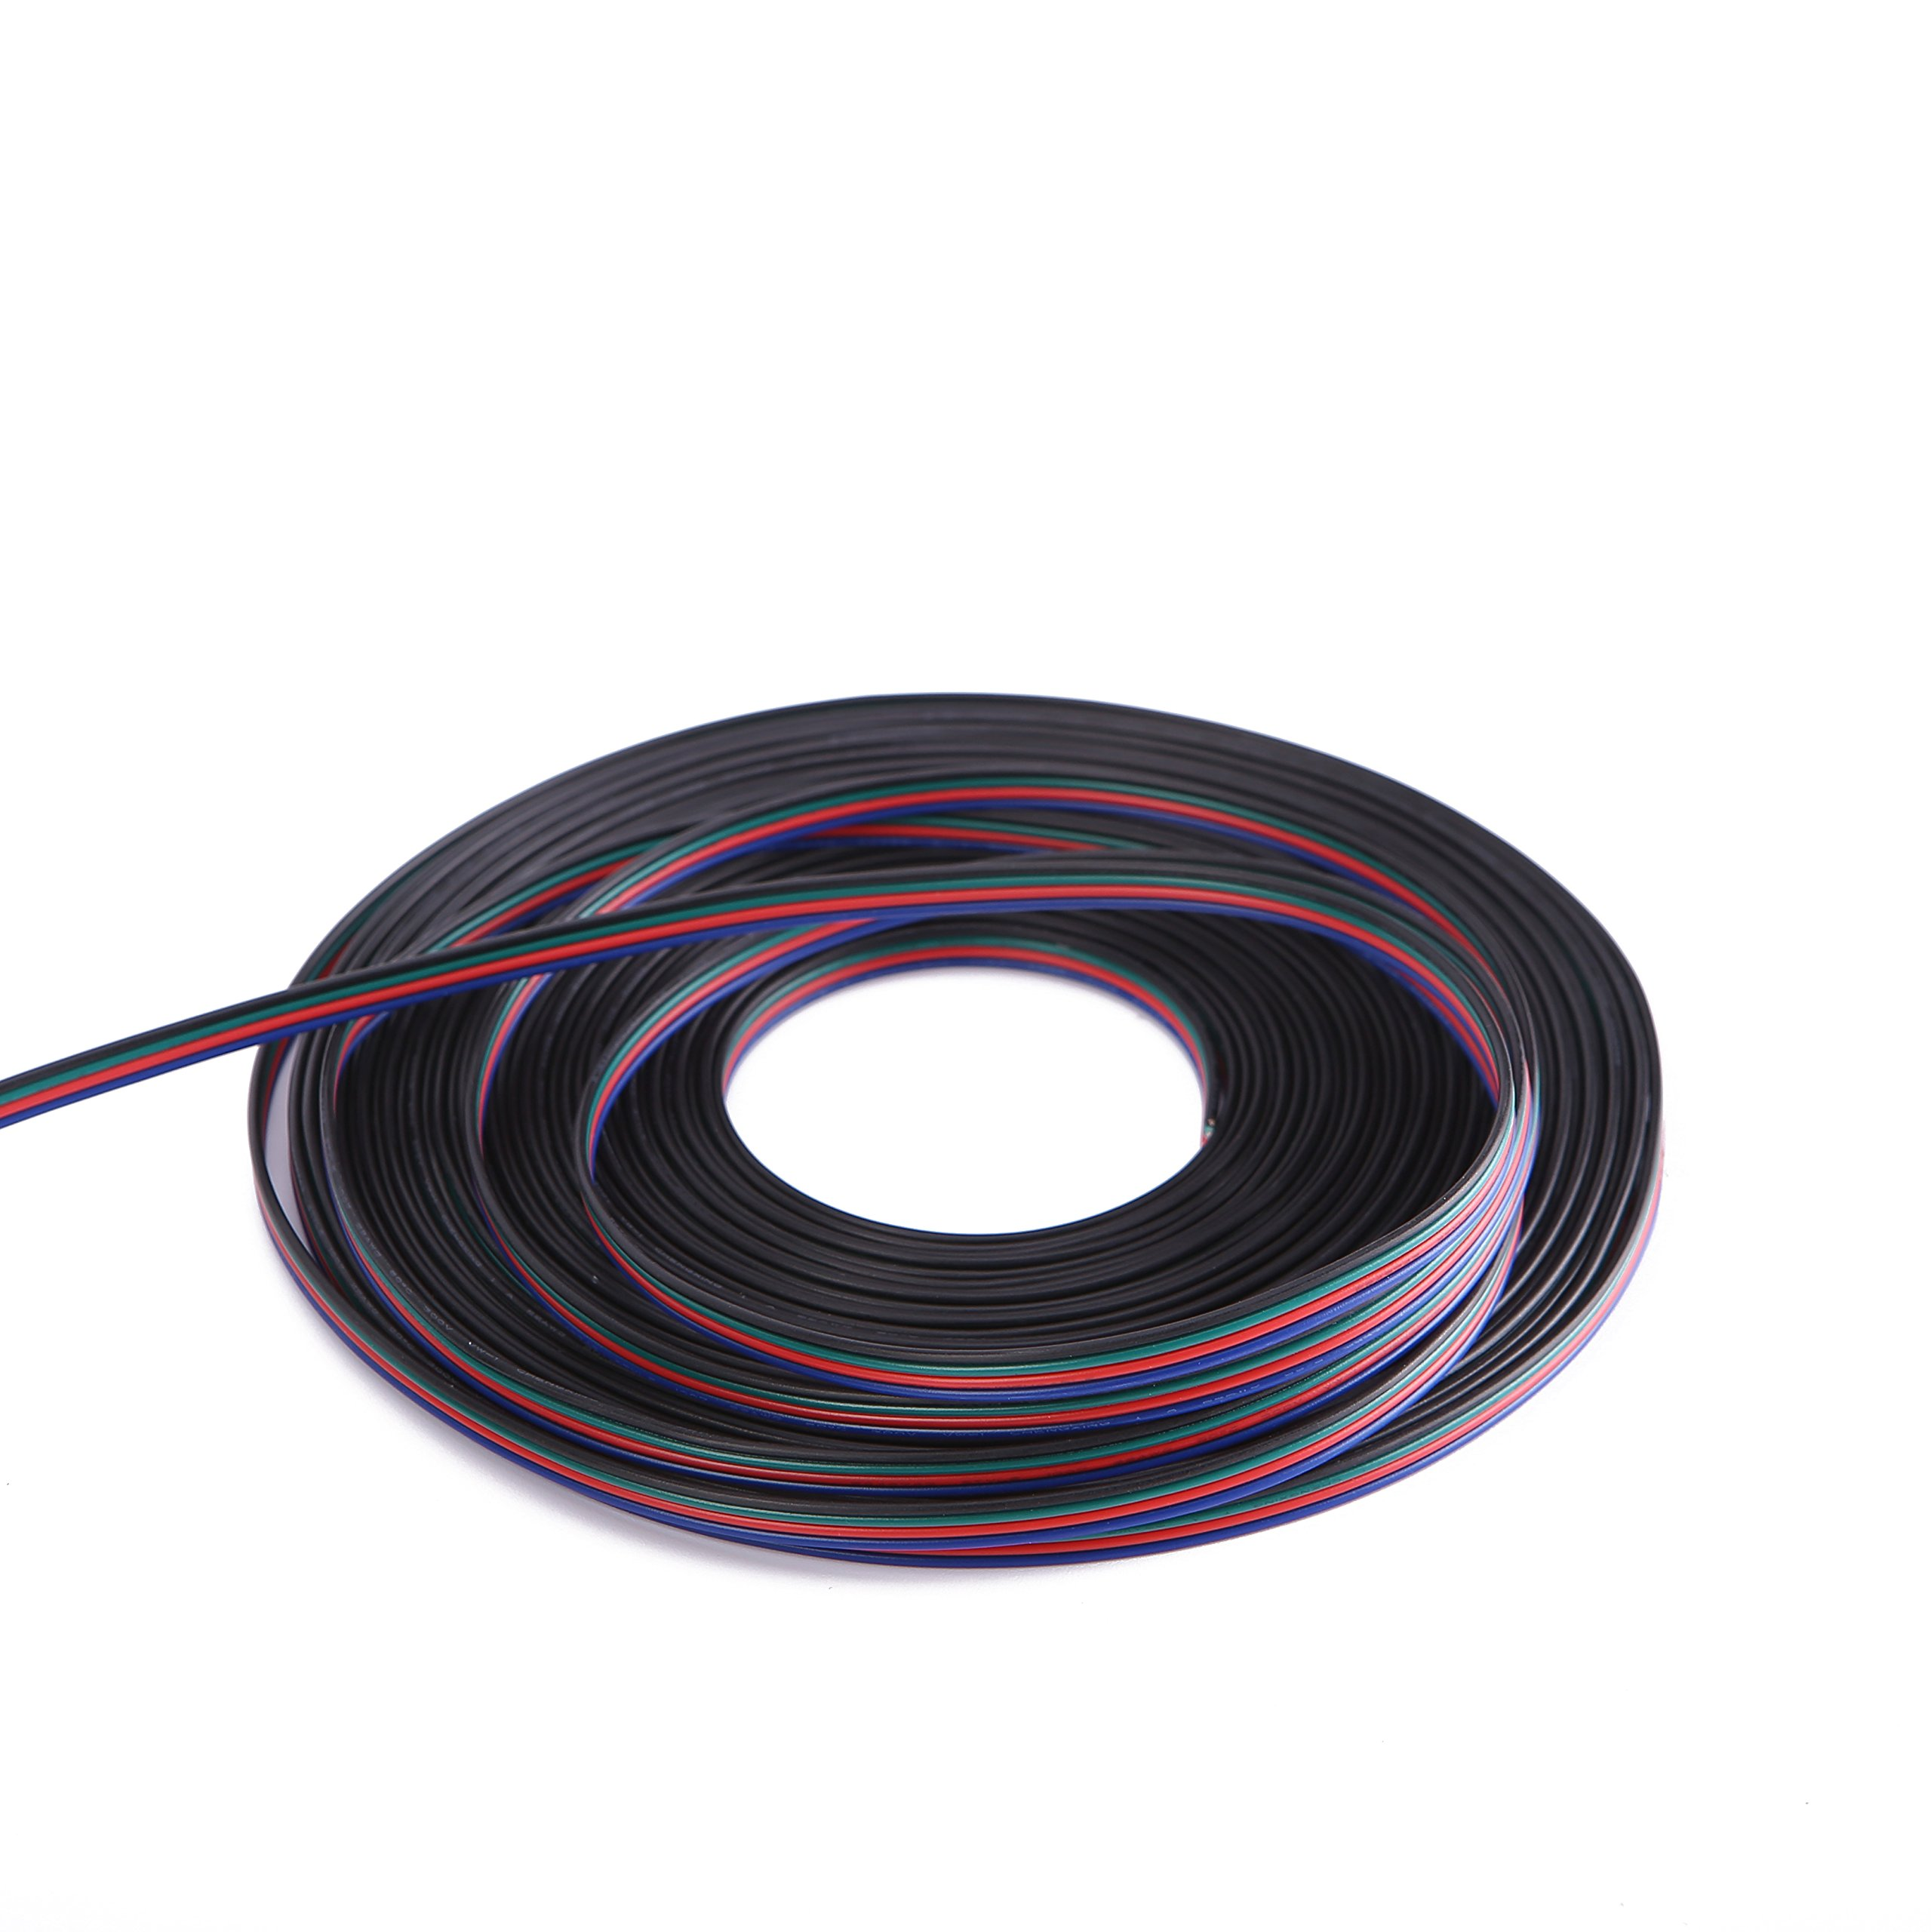 C-able 100ft(30.5m) 22 AWG 4Pin RGB Wire Extension Cable with Spool, Led Lights Wires Strip Extend Wire for 5050 3528, with 8PCS RGB Led Strip Connectors by C-able (Image #5)